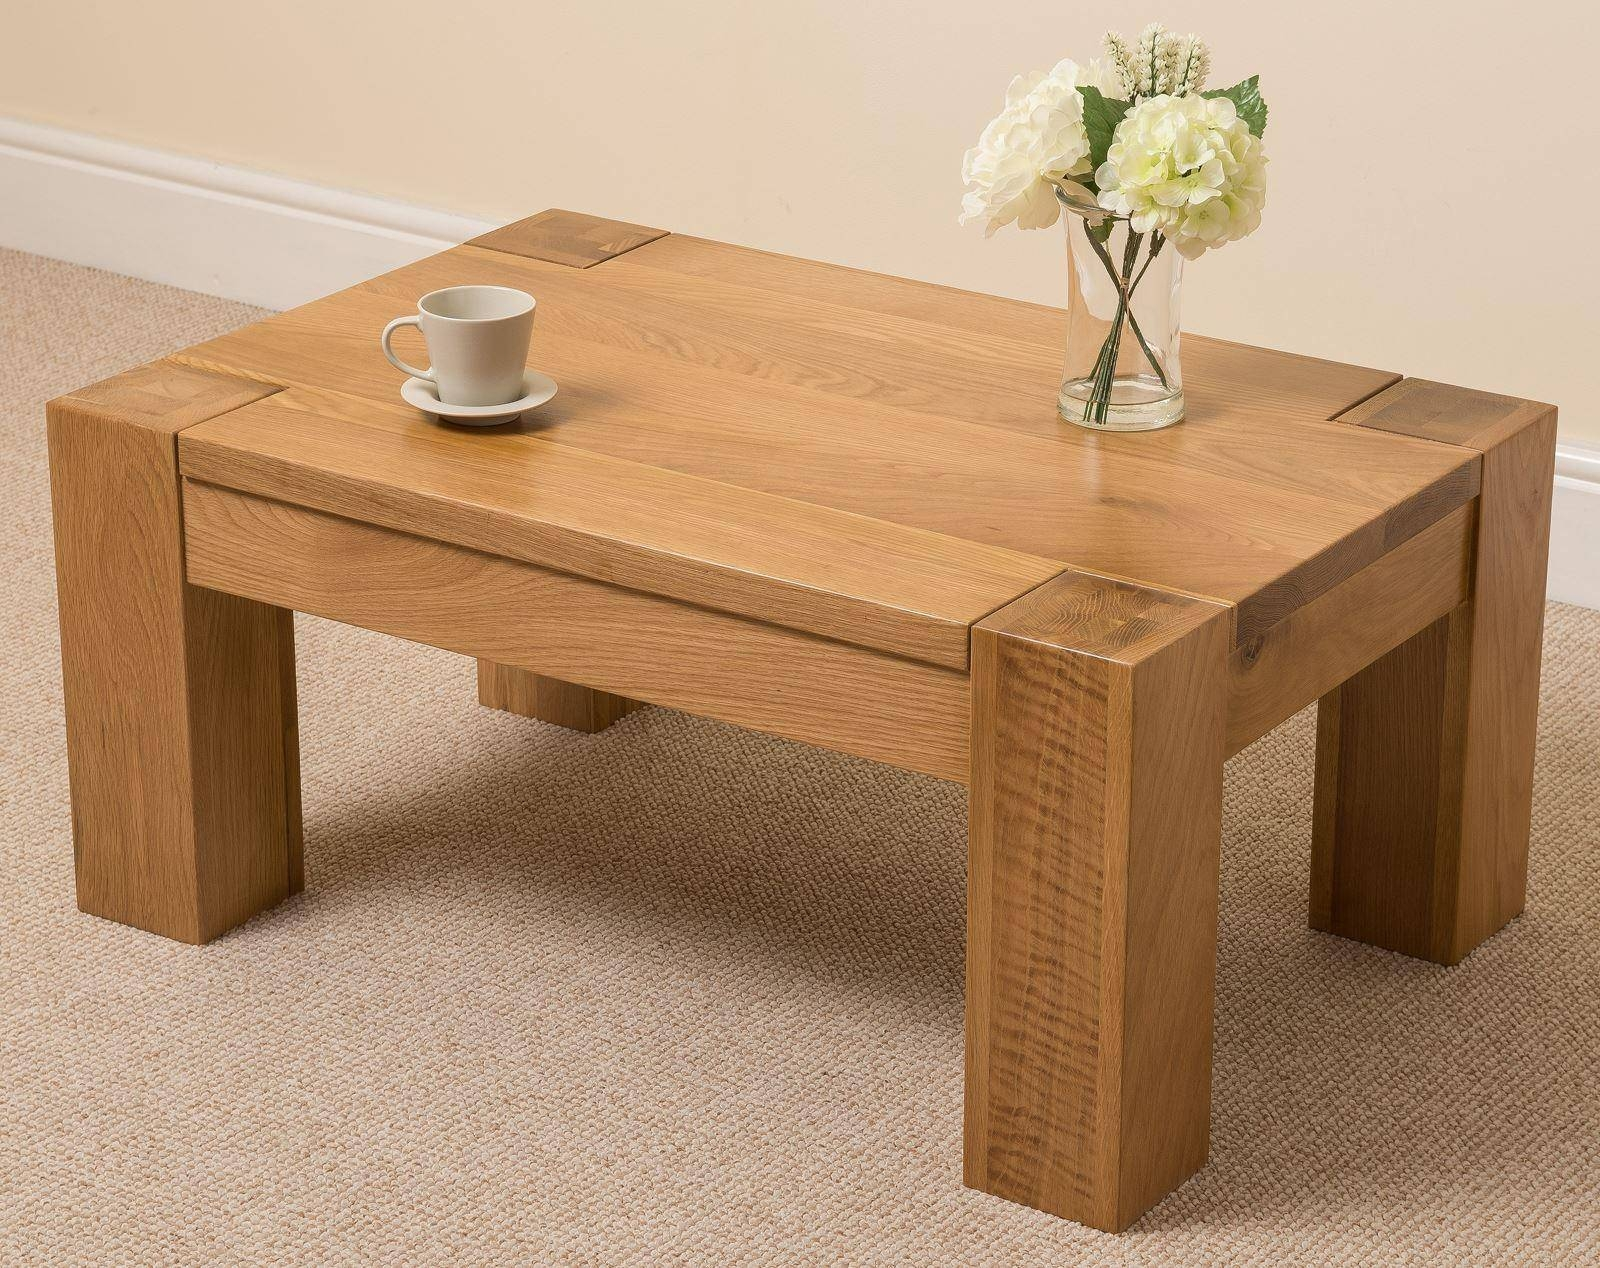 Kuba Solid Oak Coffee Table | Oak Furniture King for Oak Furniture Coffee Tables (Image 7 of 15)